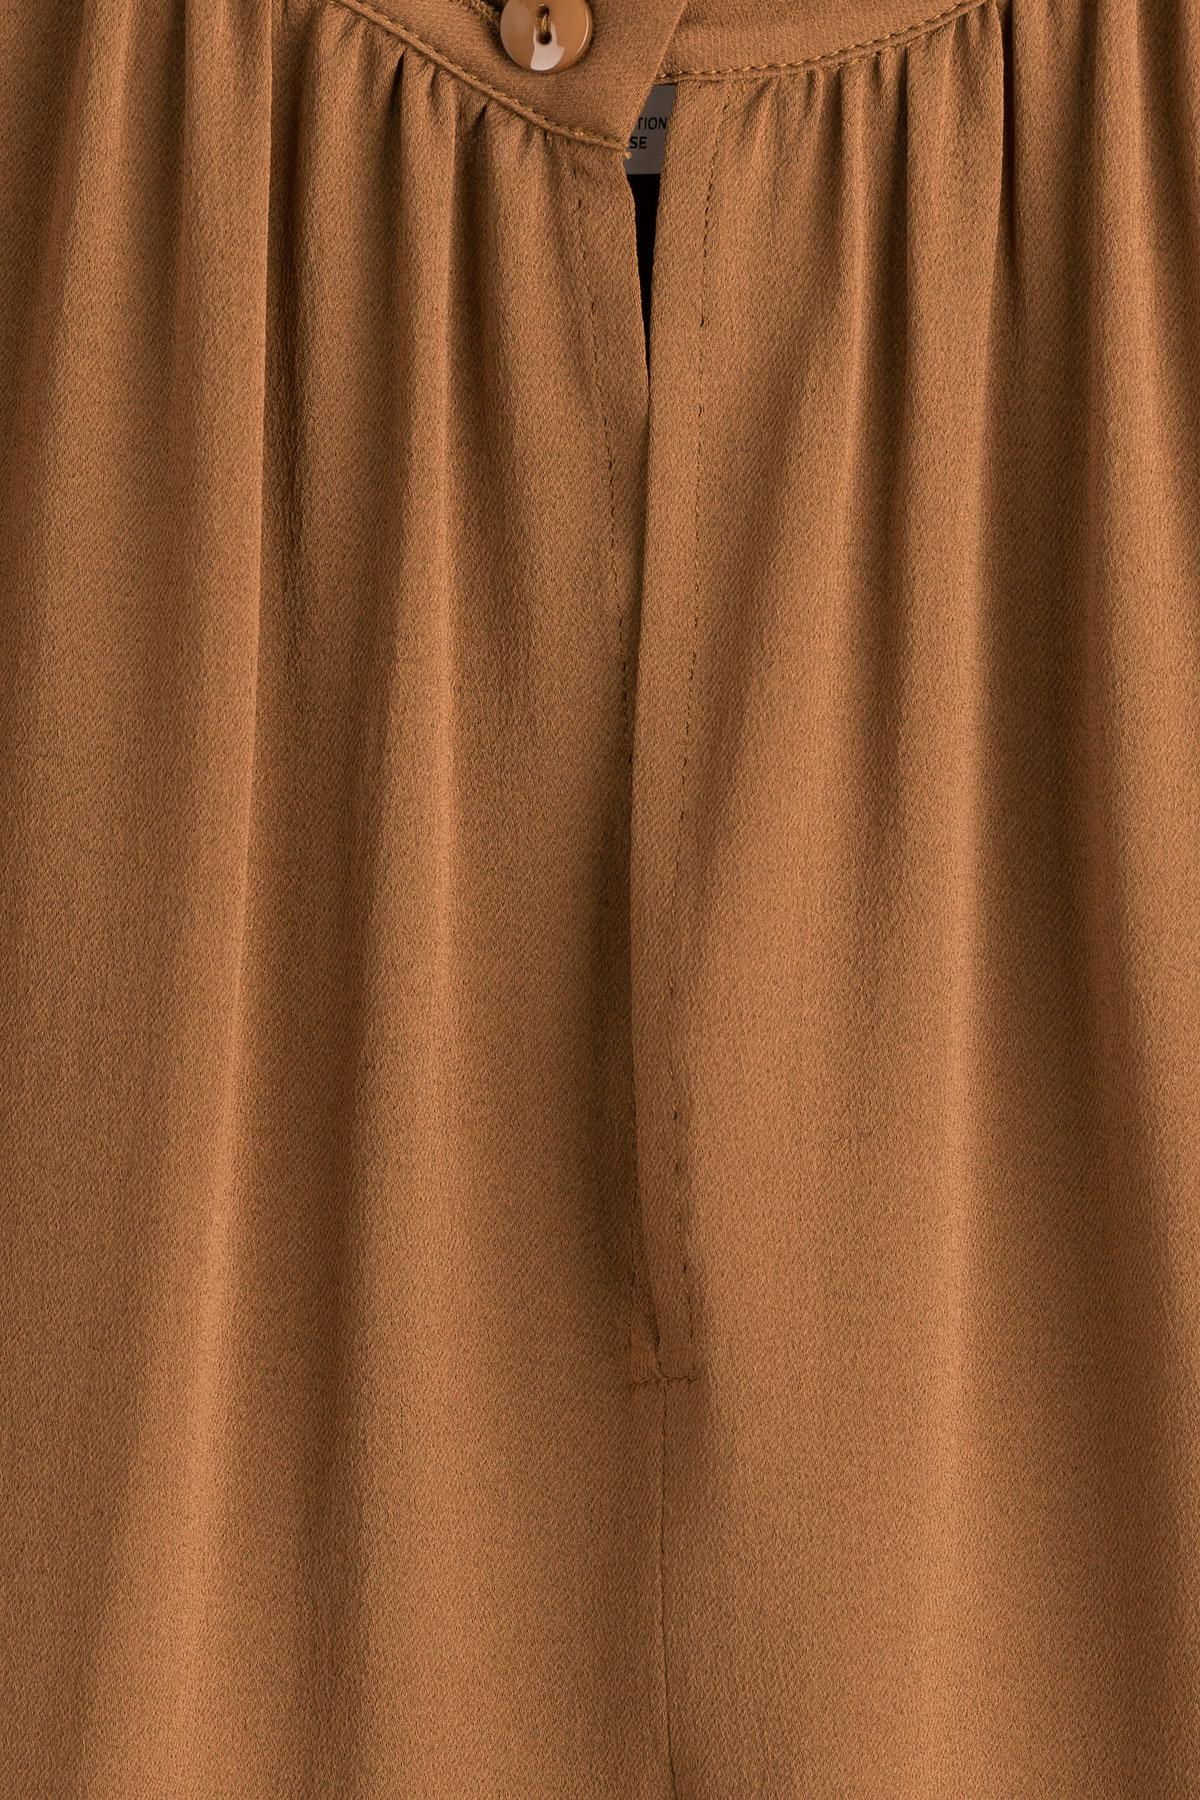 07c1dd6b004b43 Max Mara Silk Sabadel Blouse in Brown - Lyst